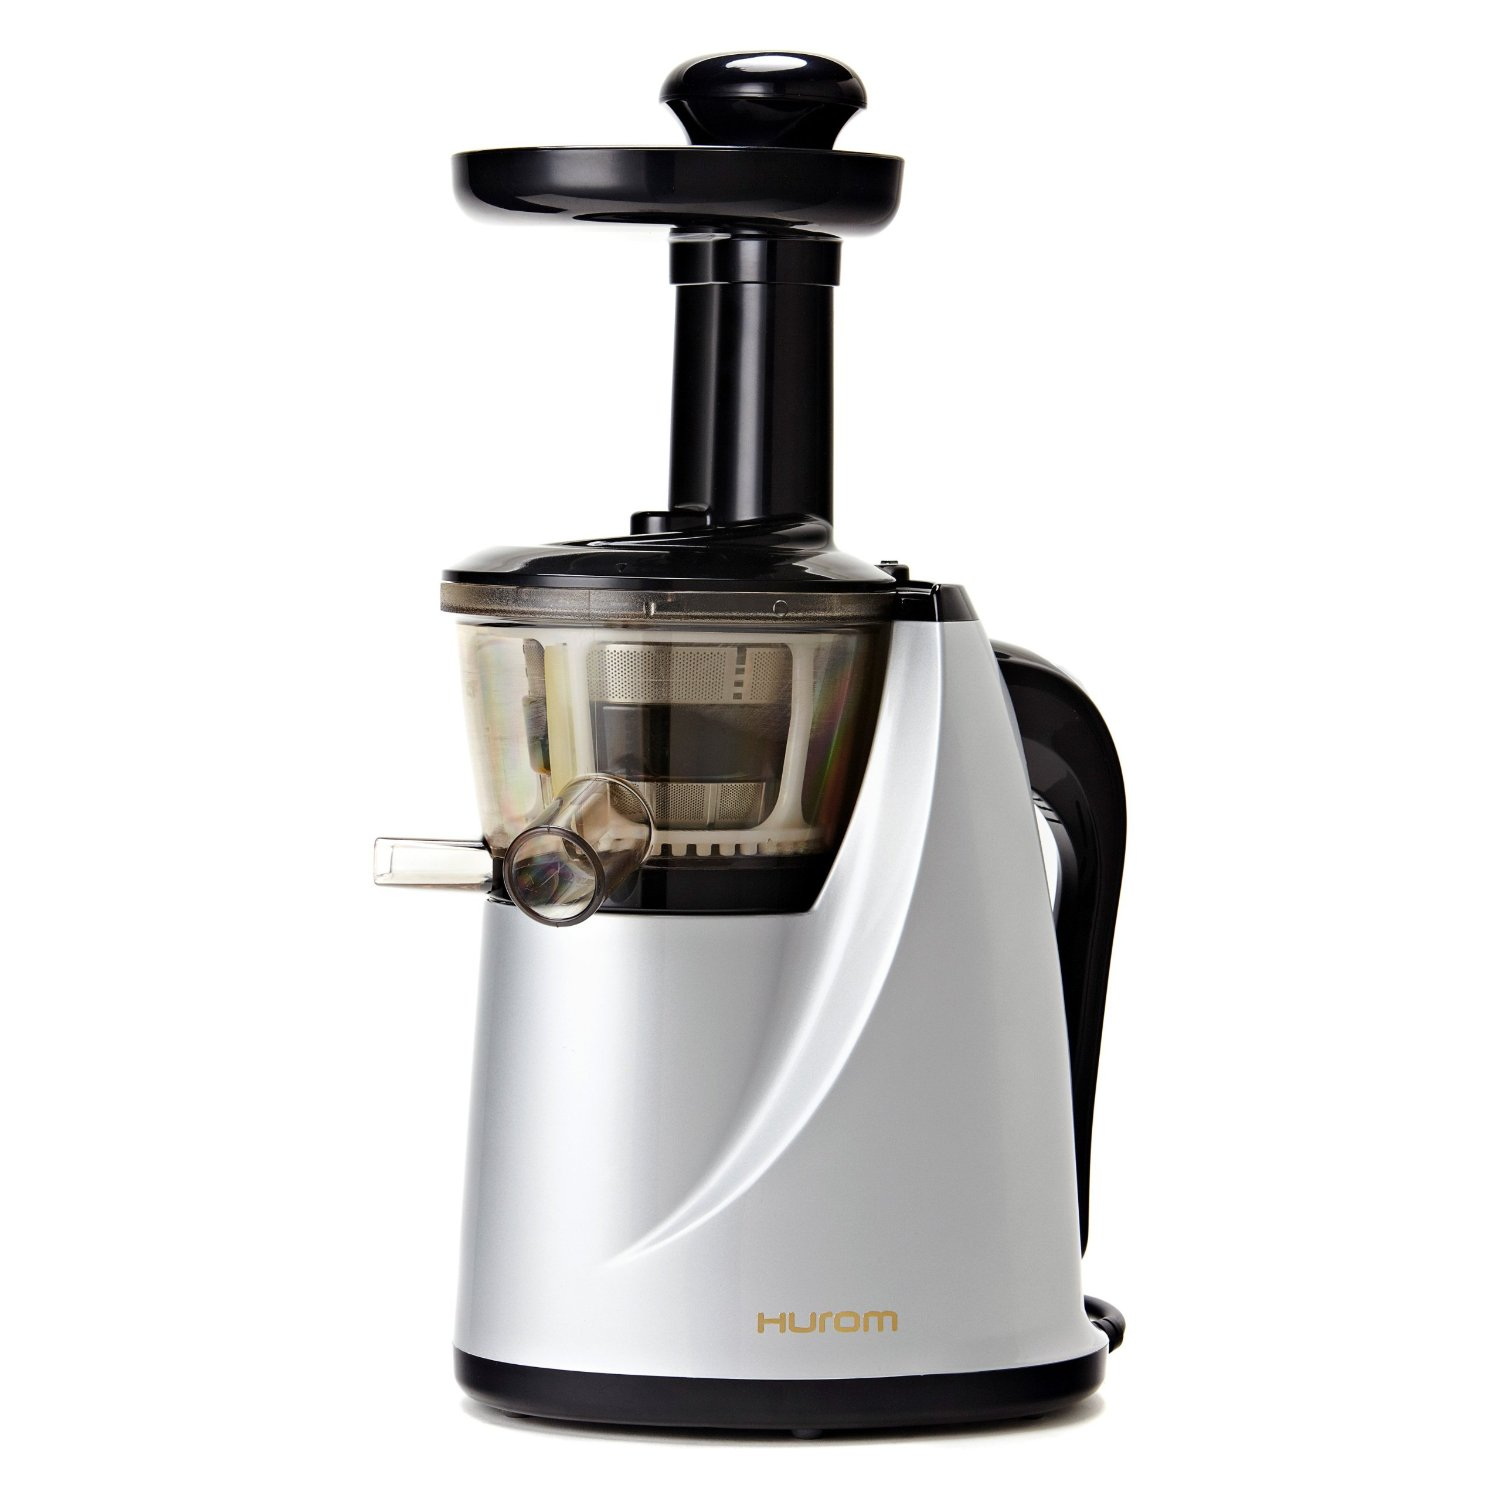 Kuvings Masticating Slow Juicer Vs Omega : Hurom HU-100 Masticating Slow Juicer Review - Best Cold Press Juicers